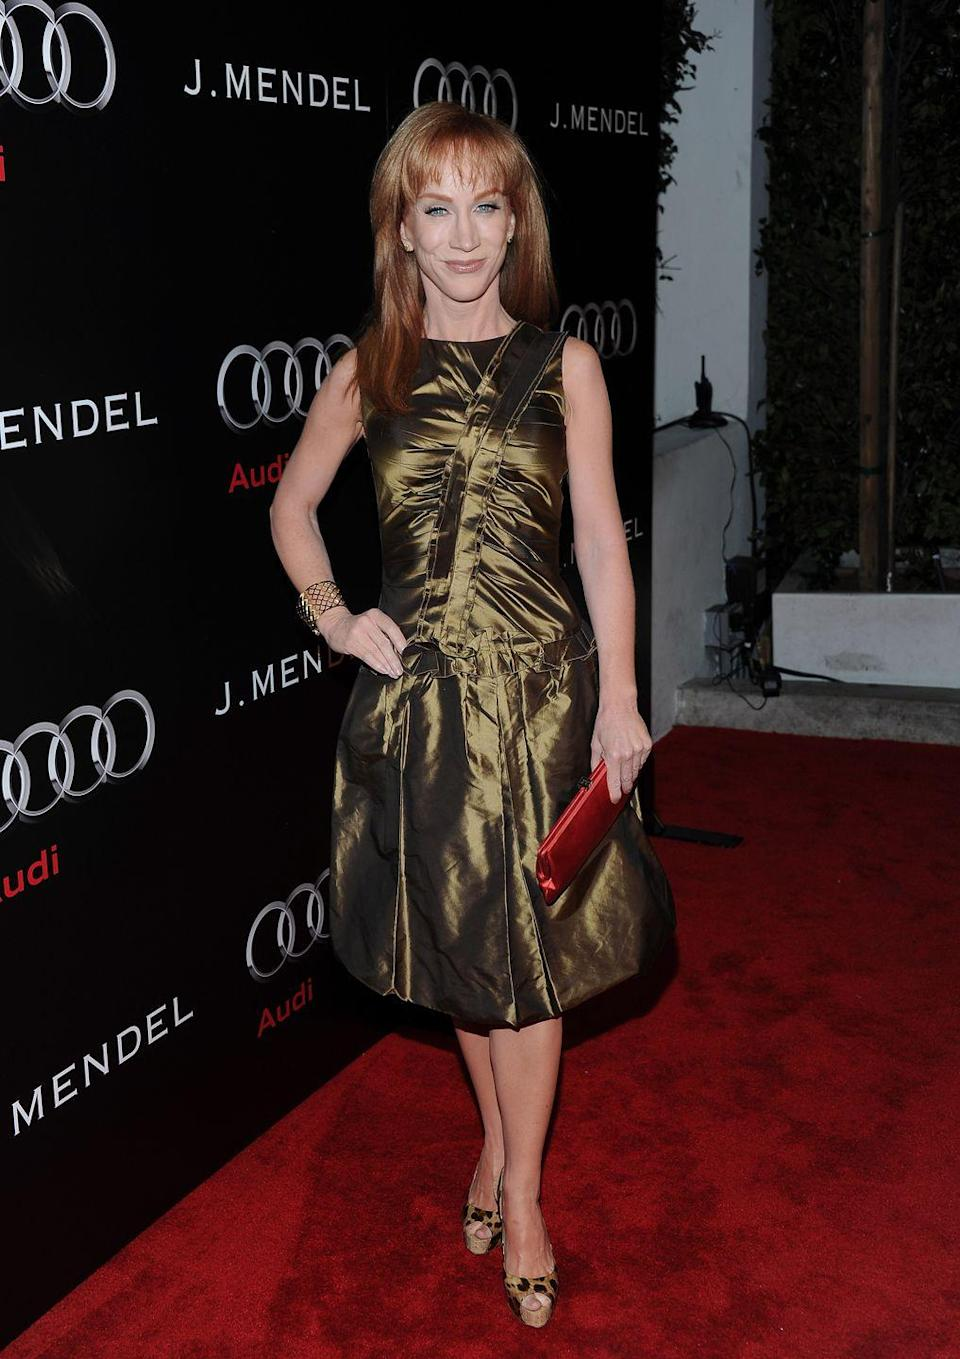 """<p>Kathy Griffin has used her cosmetic procedures as inspiration for her stand-up routines. But the comedian had an awful experience with liposuction, which led to some self-revelations. 'What I can't figure out is why I wasted time worrying about my looks,' <a href=""""https://www.nydailynews.com/entertainment/gossip/kathy-griffin-opens-botched-liposuction-jennifer-aniston-article-1.176229"""" rel=""""nofollow noopener"""" target=""""_blank"""" data-ylk=""""slk:she said"""" class=""""link rapid-noclick-resp"""">she said</a>. 'I am a comedian. I'm not on the runway in Milan. Believe it or not, people don't come to see me really thinking I'm going to look like Jennifer Aniston.'</p>"""